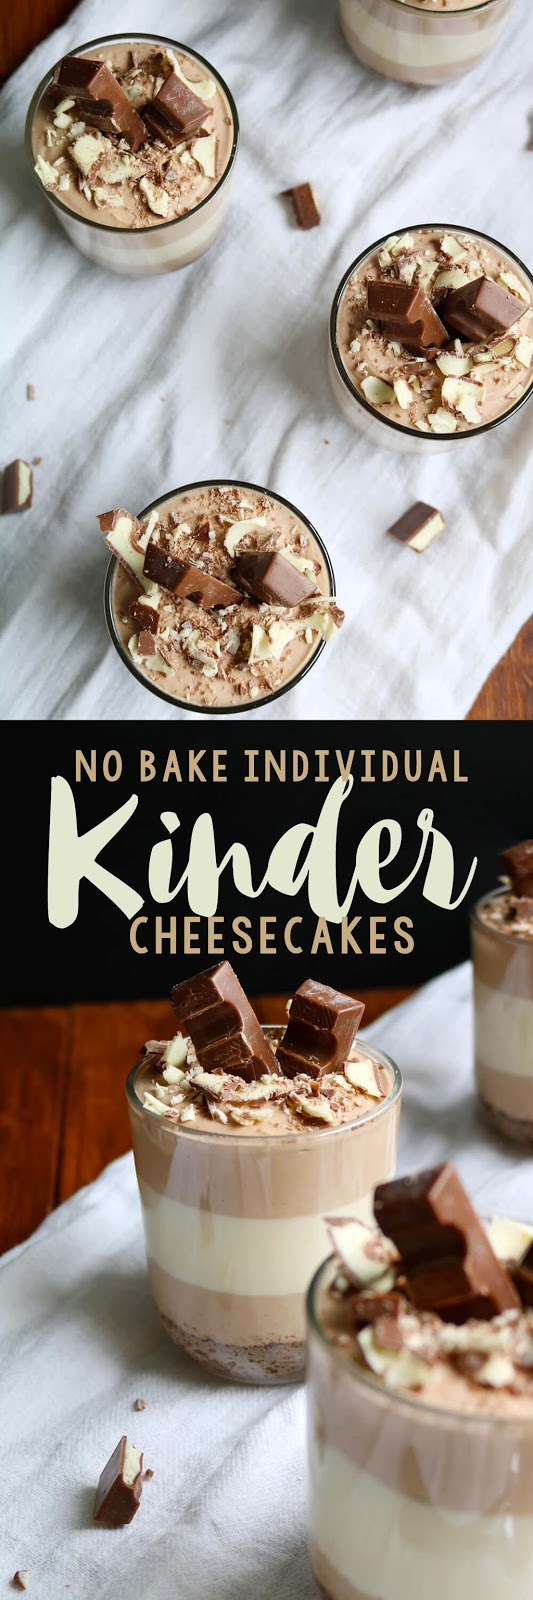 Individual No Bake Kinder Cheesecakes | Hungry Little Bear